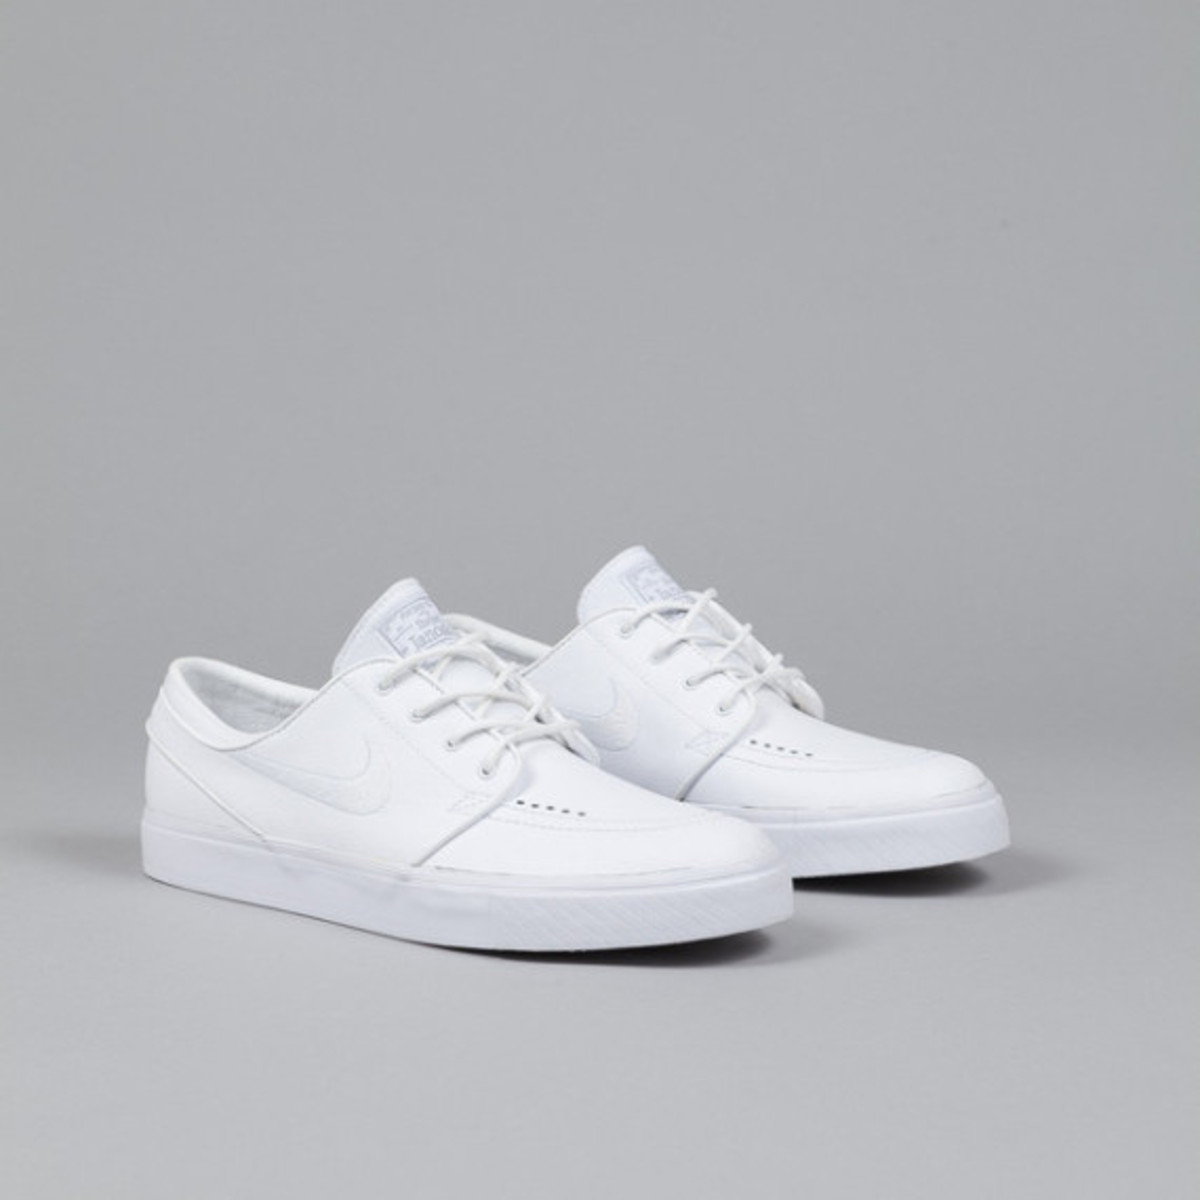 nike-sb-stefan-janoski-white-white-leather-05